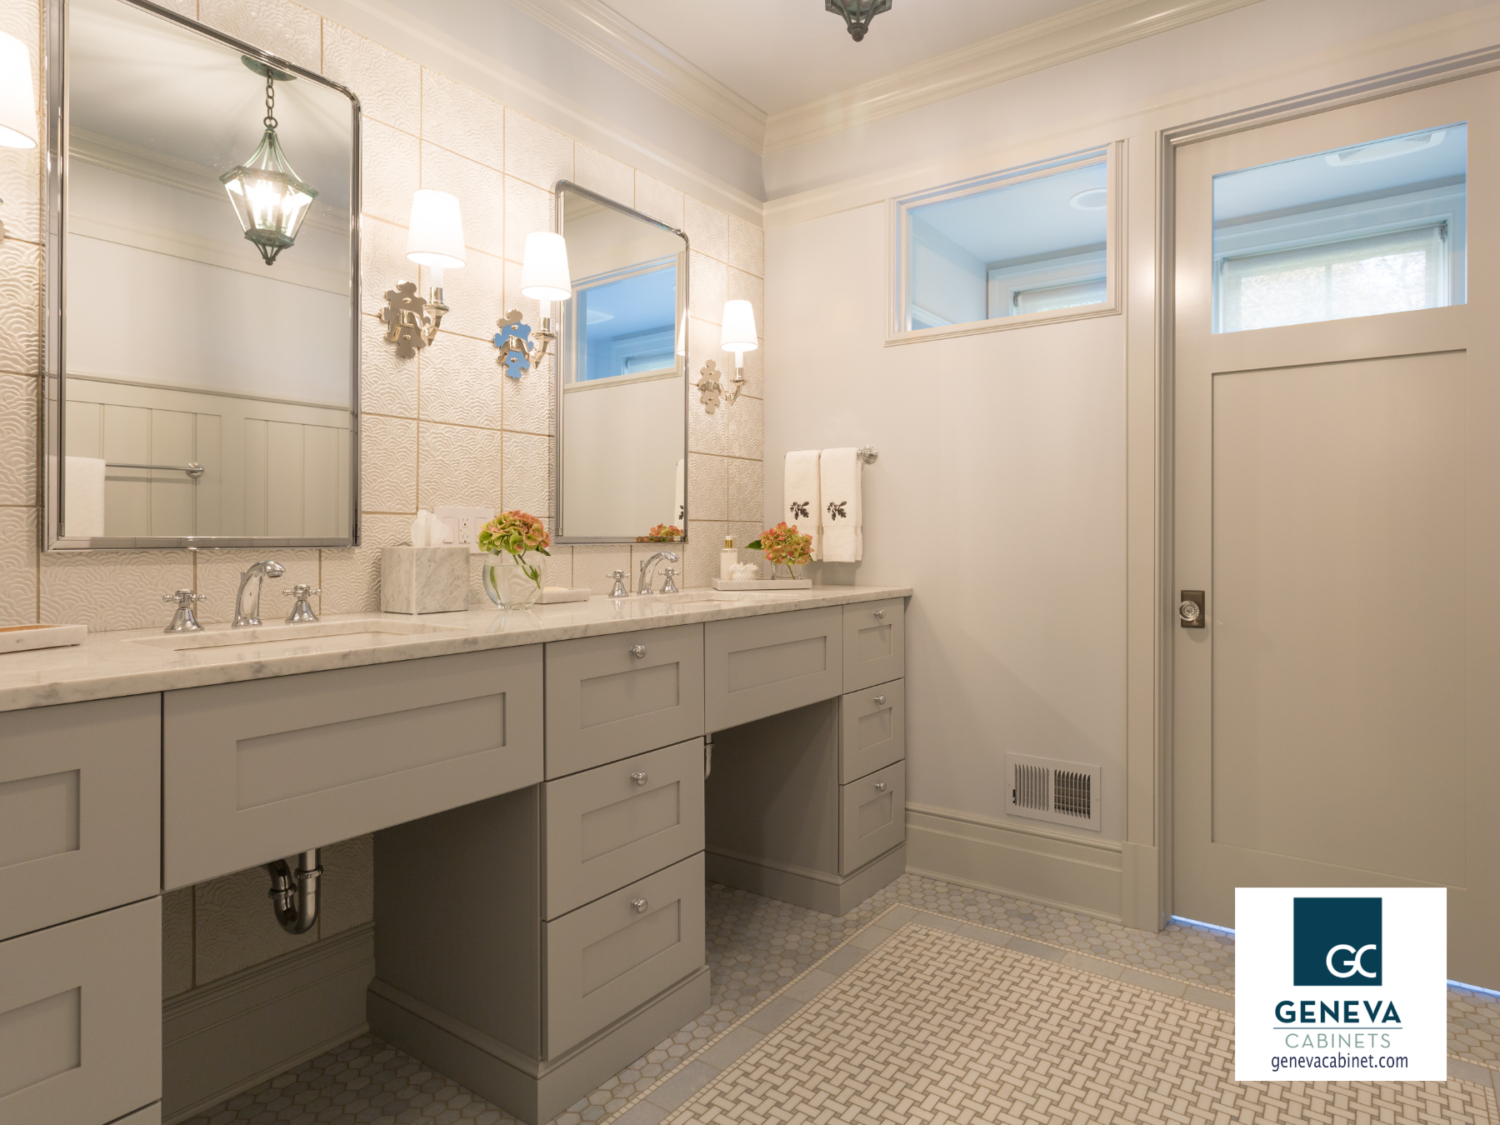 Neutral bathroom cabinet with interesting textured tile surround